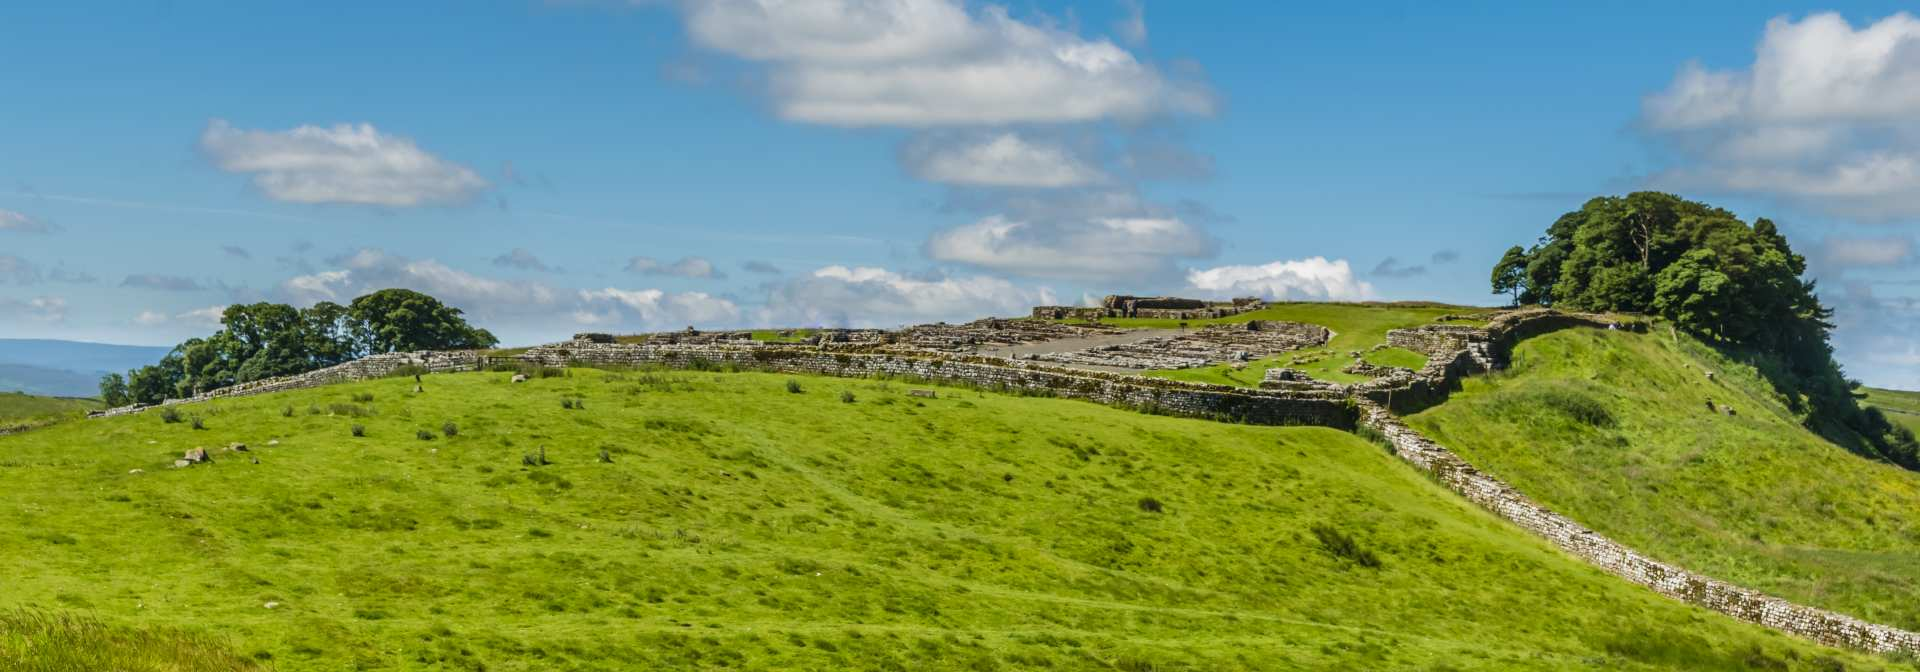 Hadrian's Wall Path - Housesteads - Nicholas Box - Landscape.jpg